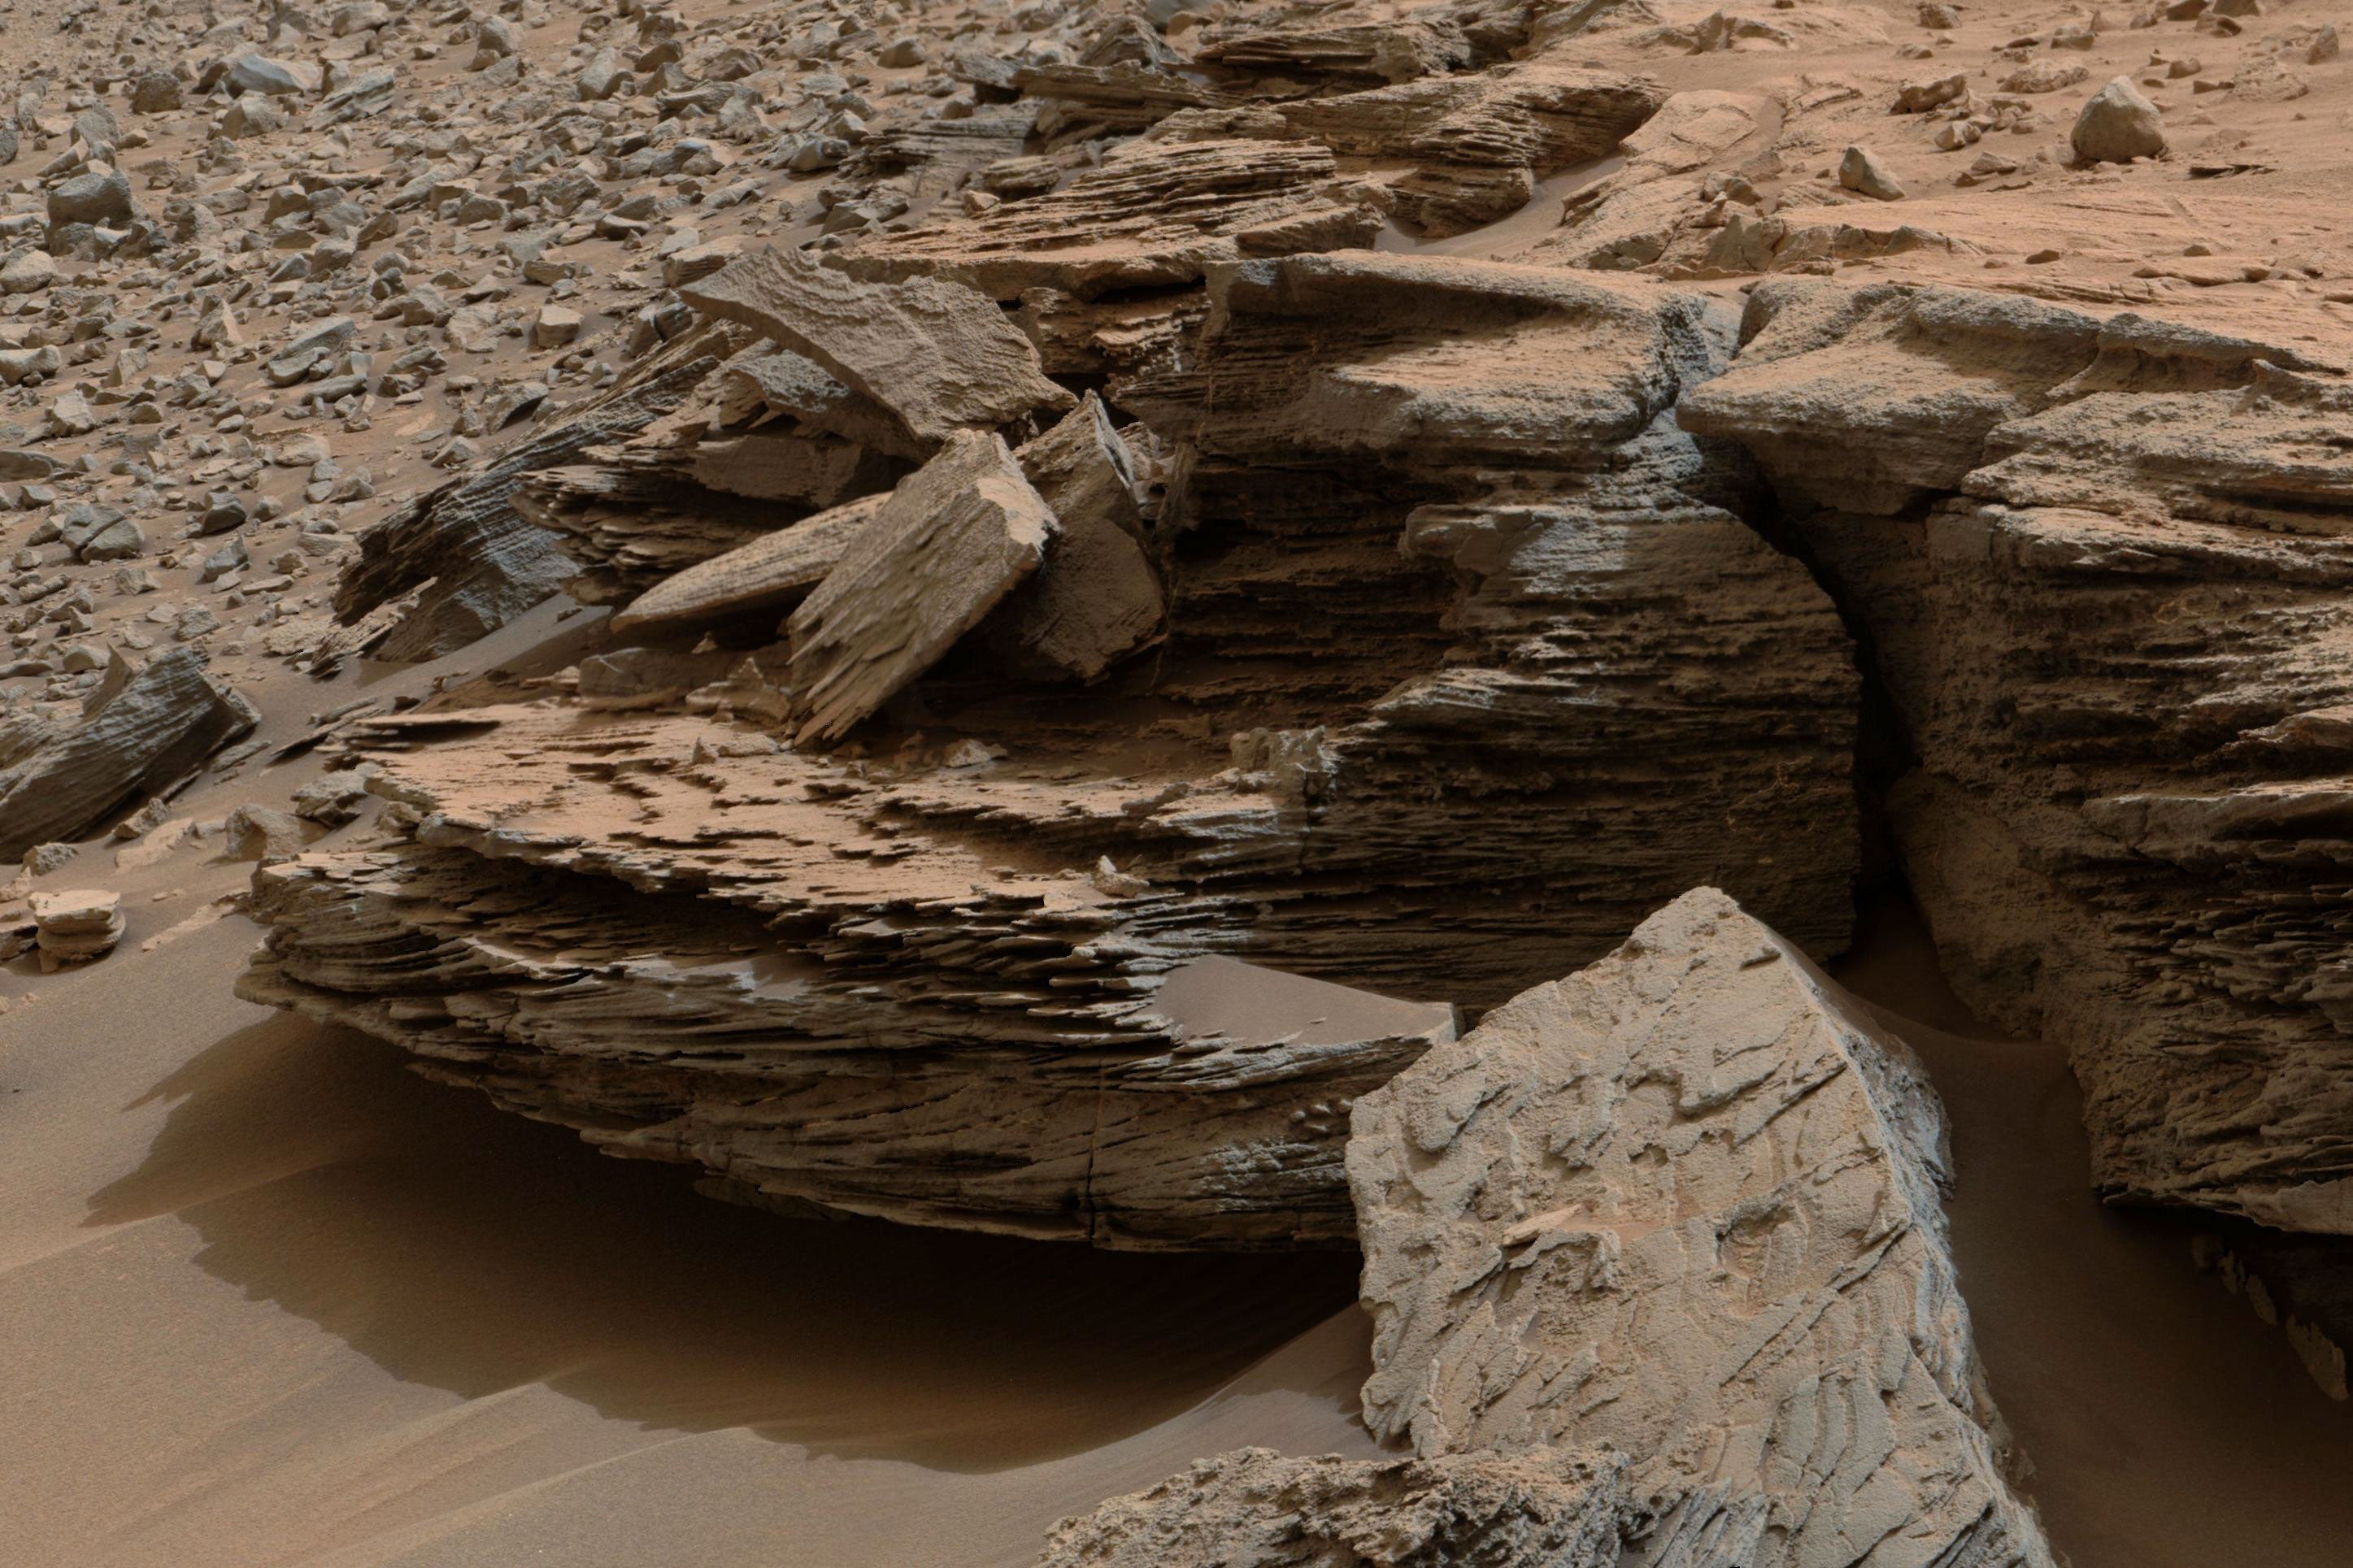 The Mud on Mars Behaves Like 'Boiling Toothpaste'